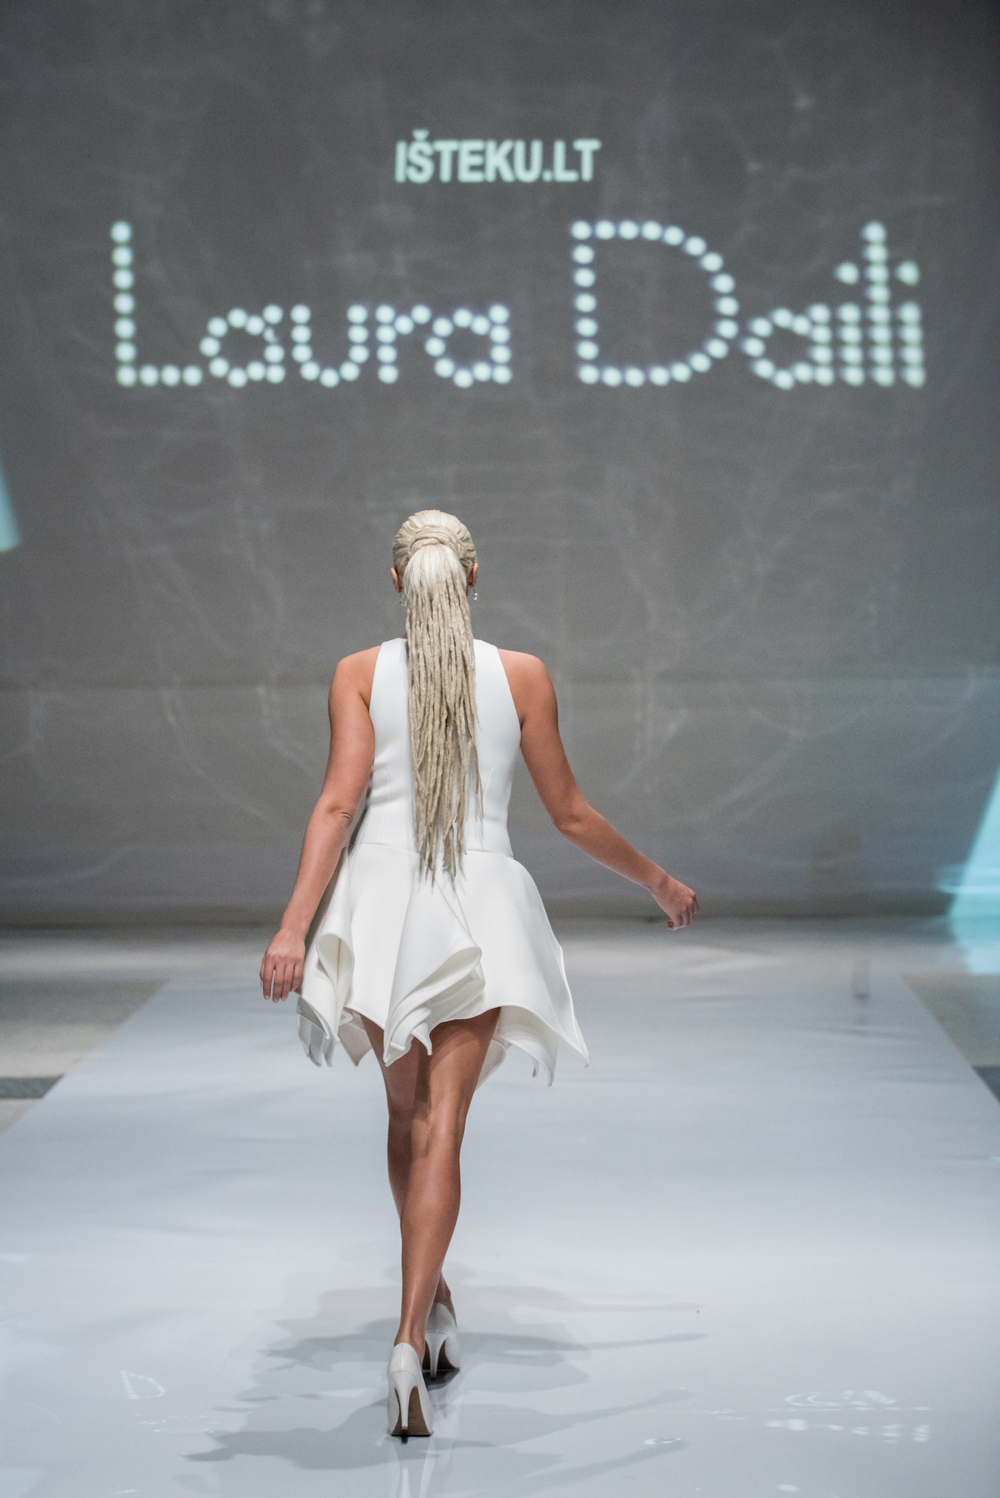 Laura Daili Bridal Collection 2017 Isteku lt (3)